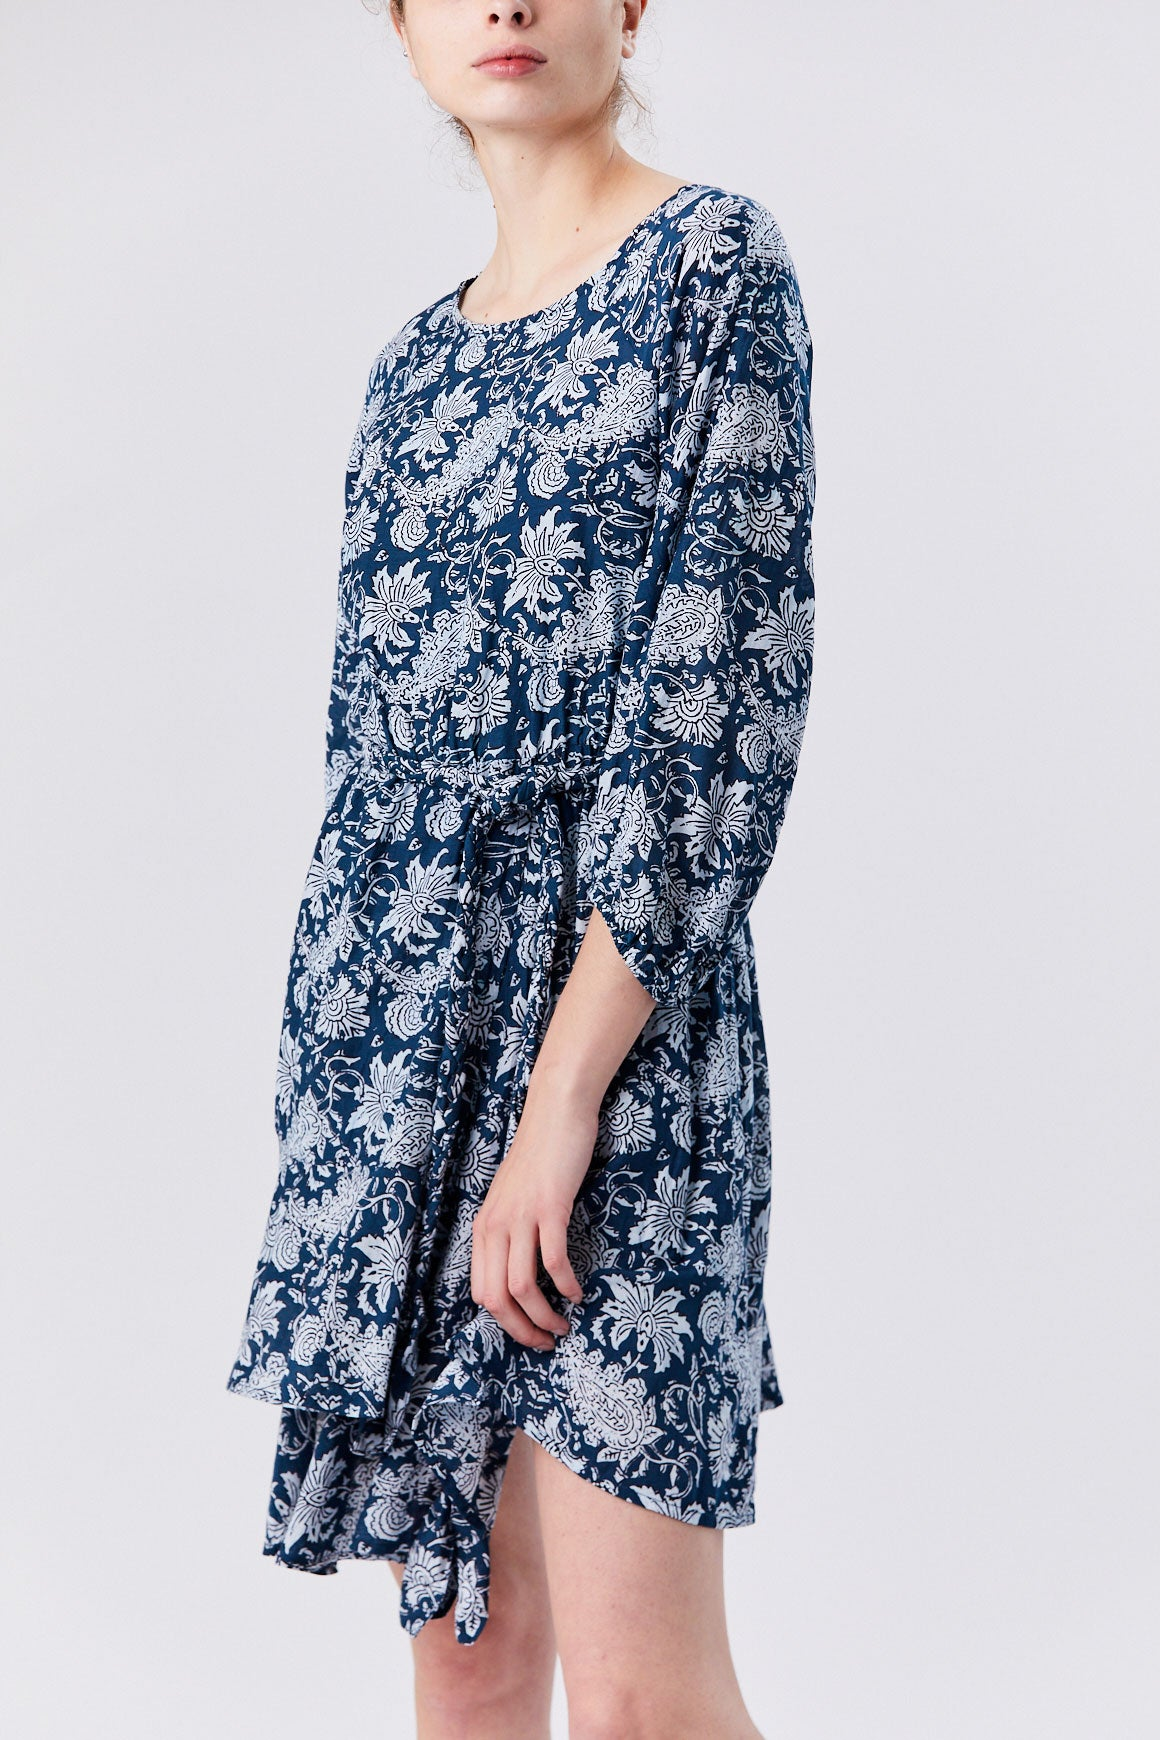 Apiece Apart - Sabine Mini Dress, Navy Floral